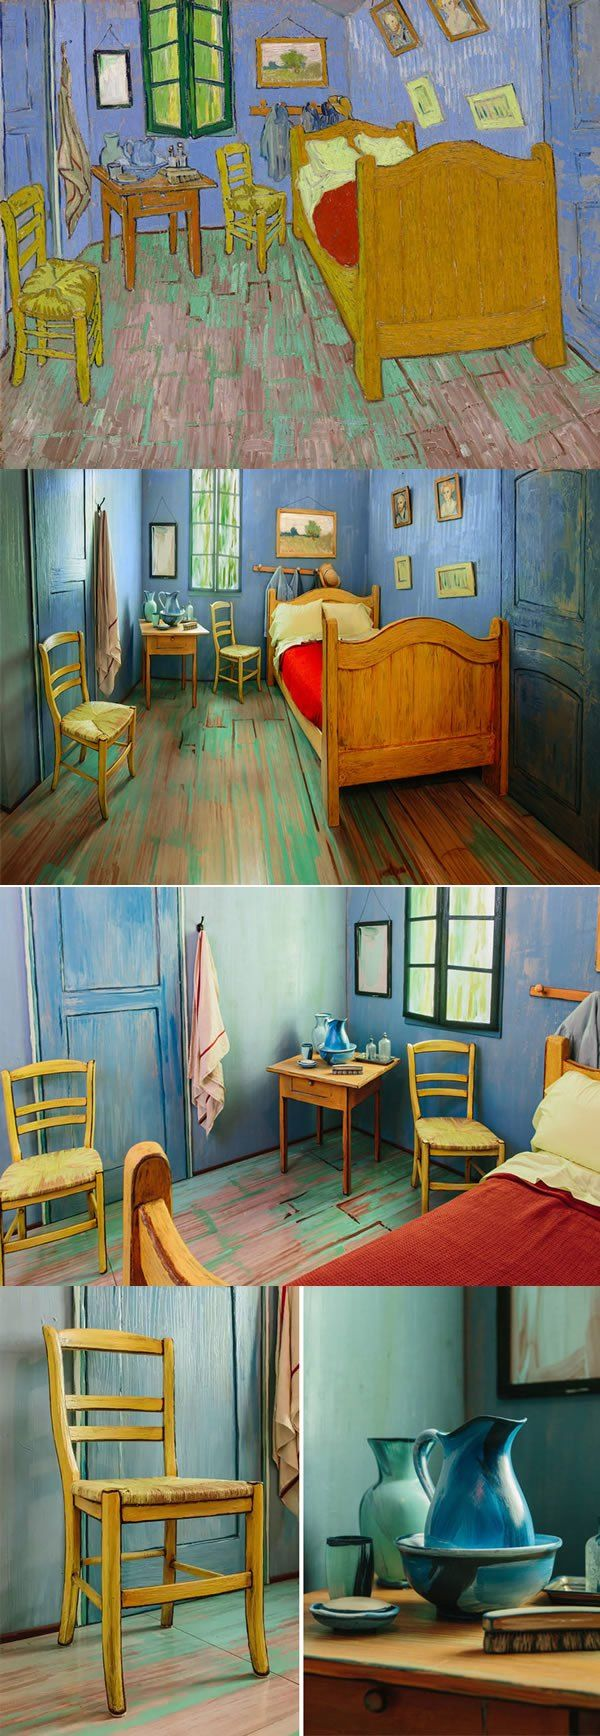 Van Gogh's Bedroom Becomes Real And Only For Rent On